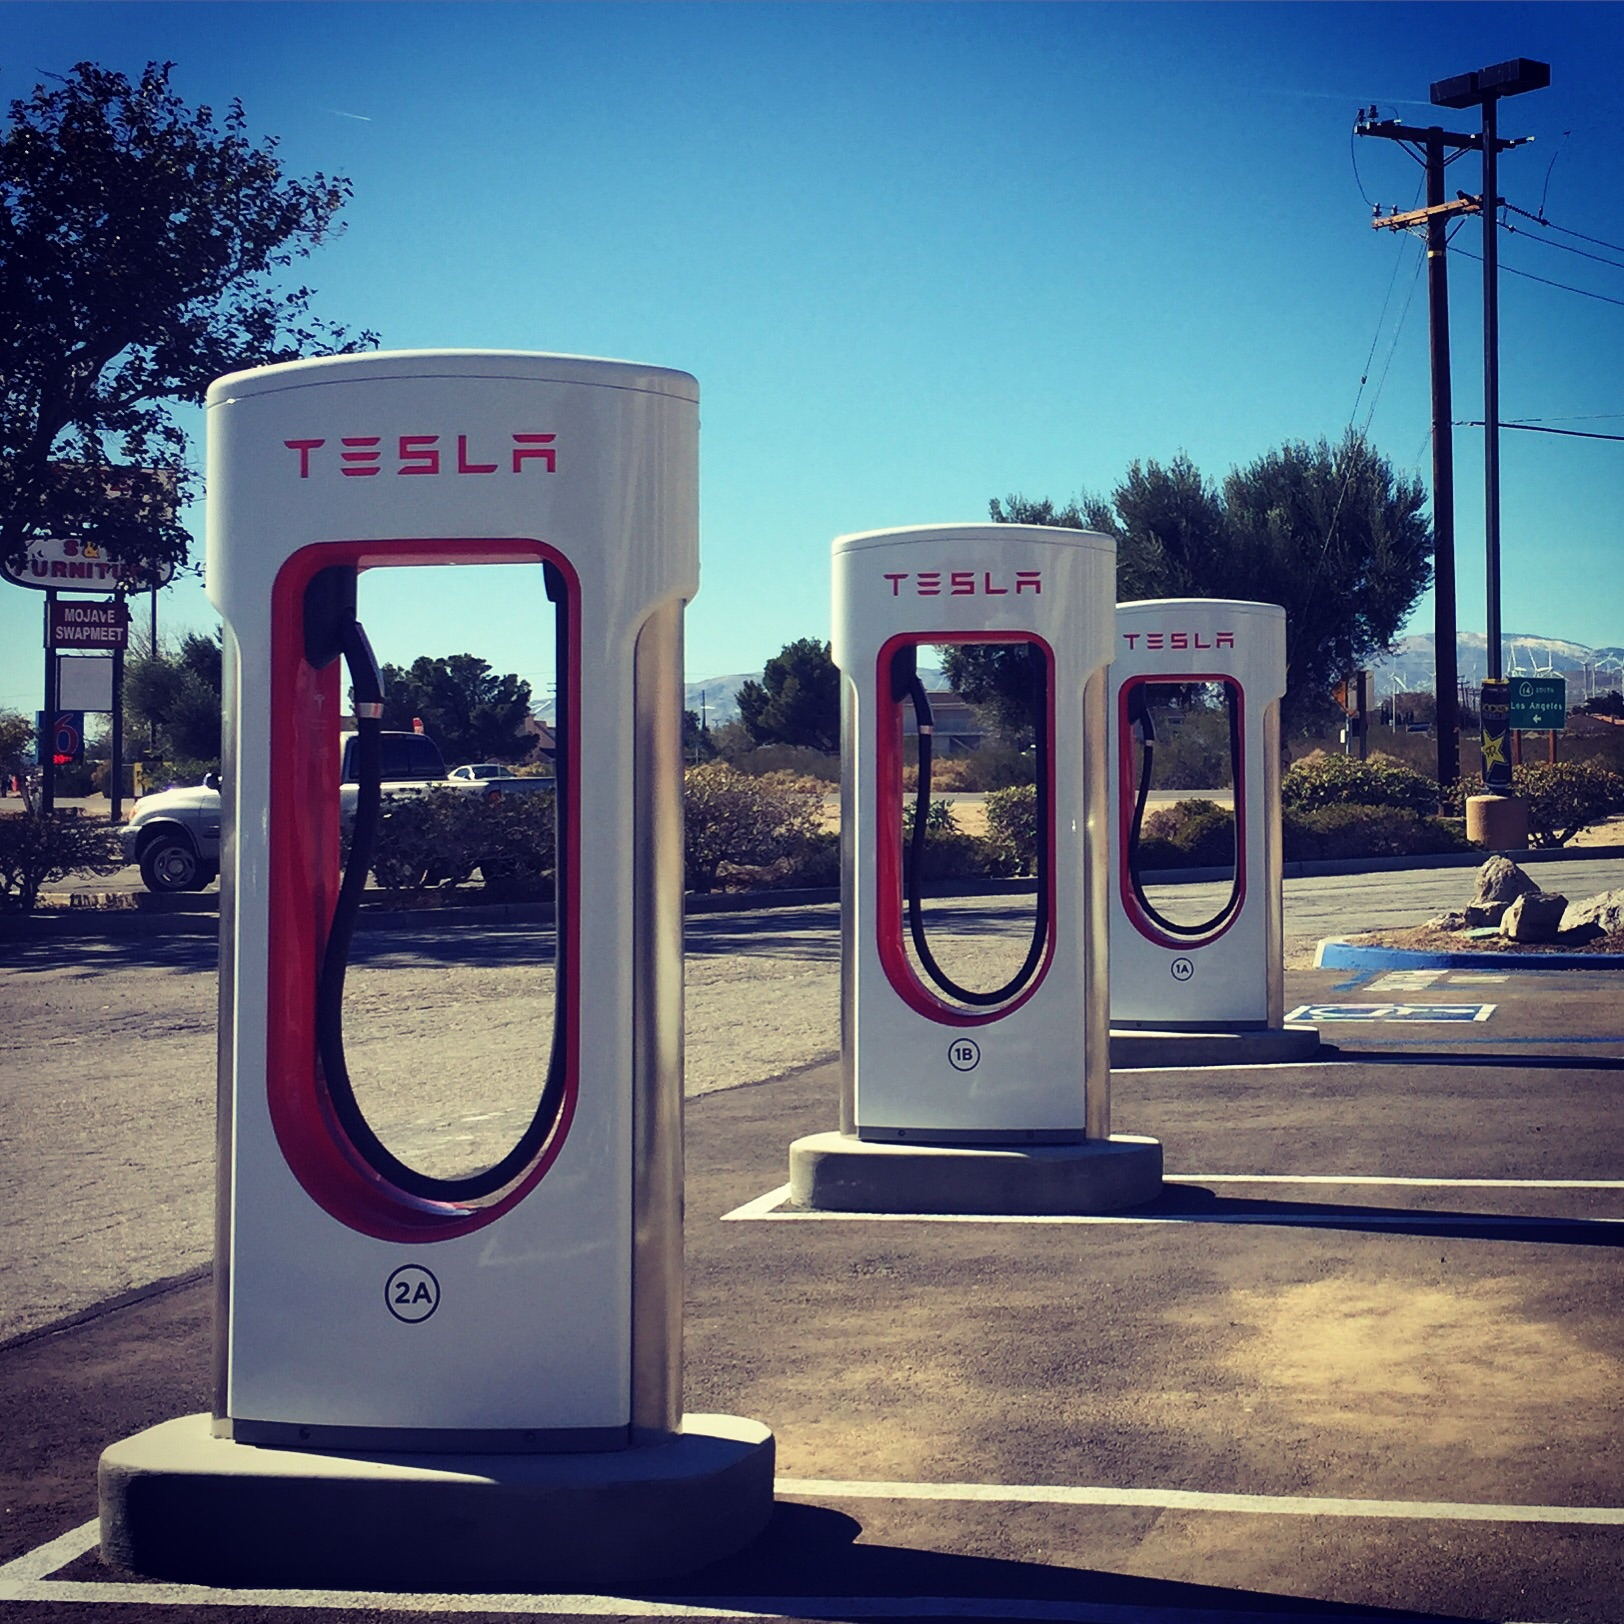 Mojave Supercharger. I heard a sonic boom shortly after taking this shot. Standard out here.